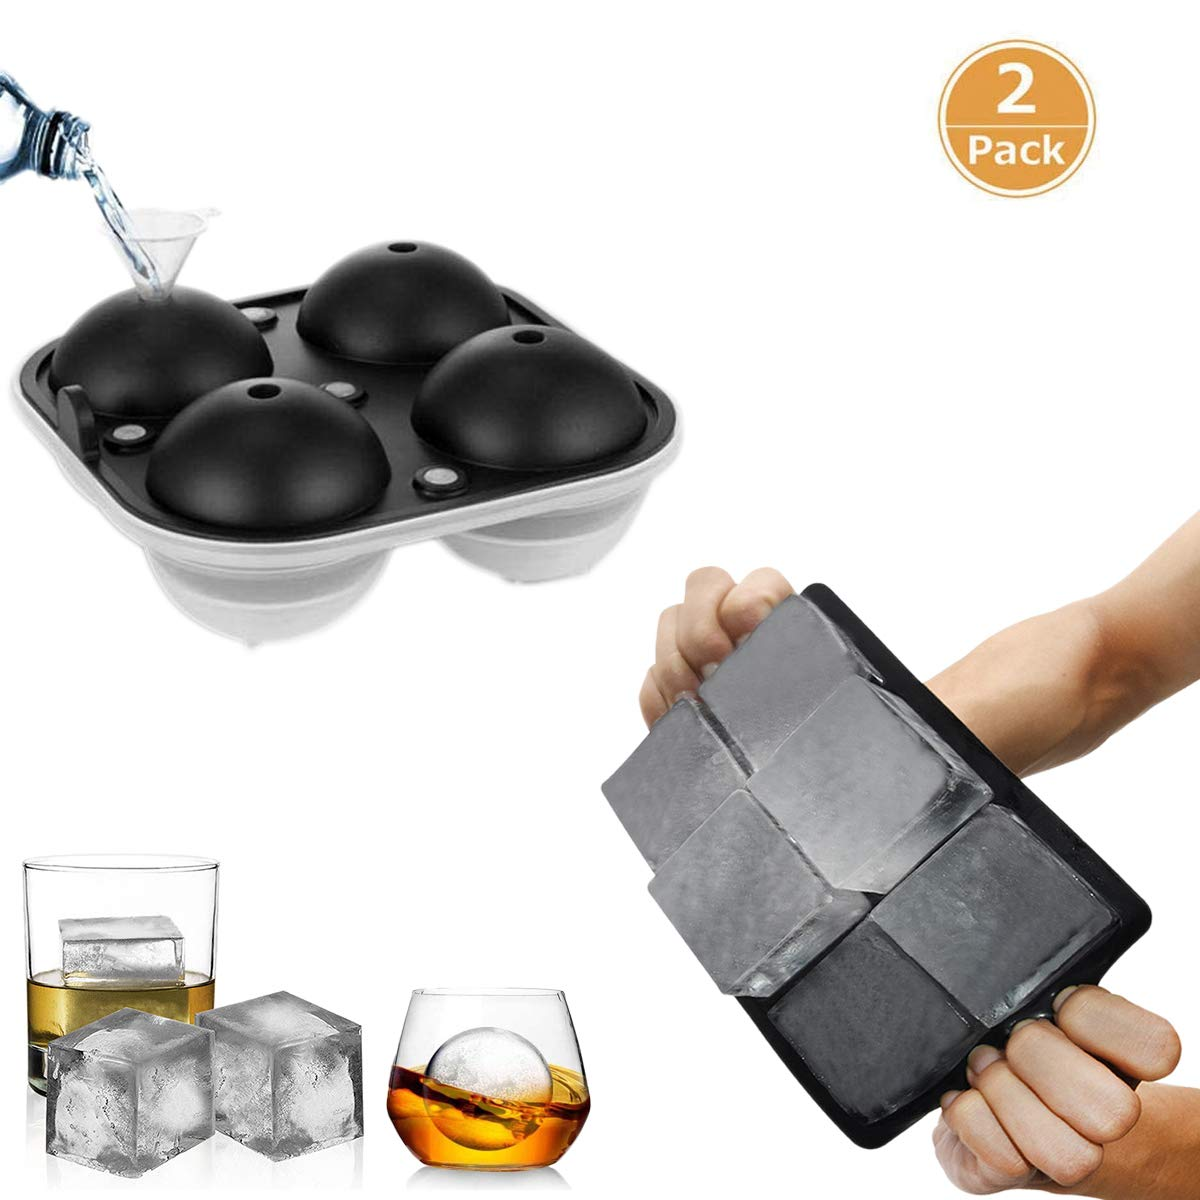 Ice Cube Trays Large Food Grade Flexible Silicone Ice Mold with Spill Lid Easy Stacking for Whiskey Soups Baby Food and Frozen Treats Gifts 4 Sphere Ice Ball Maker 6 Square Cube Molds 2 Pack